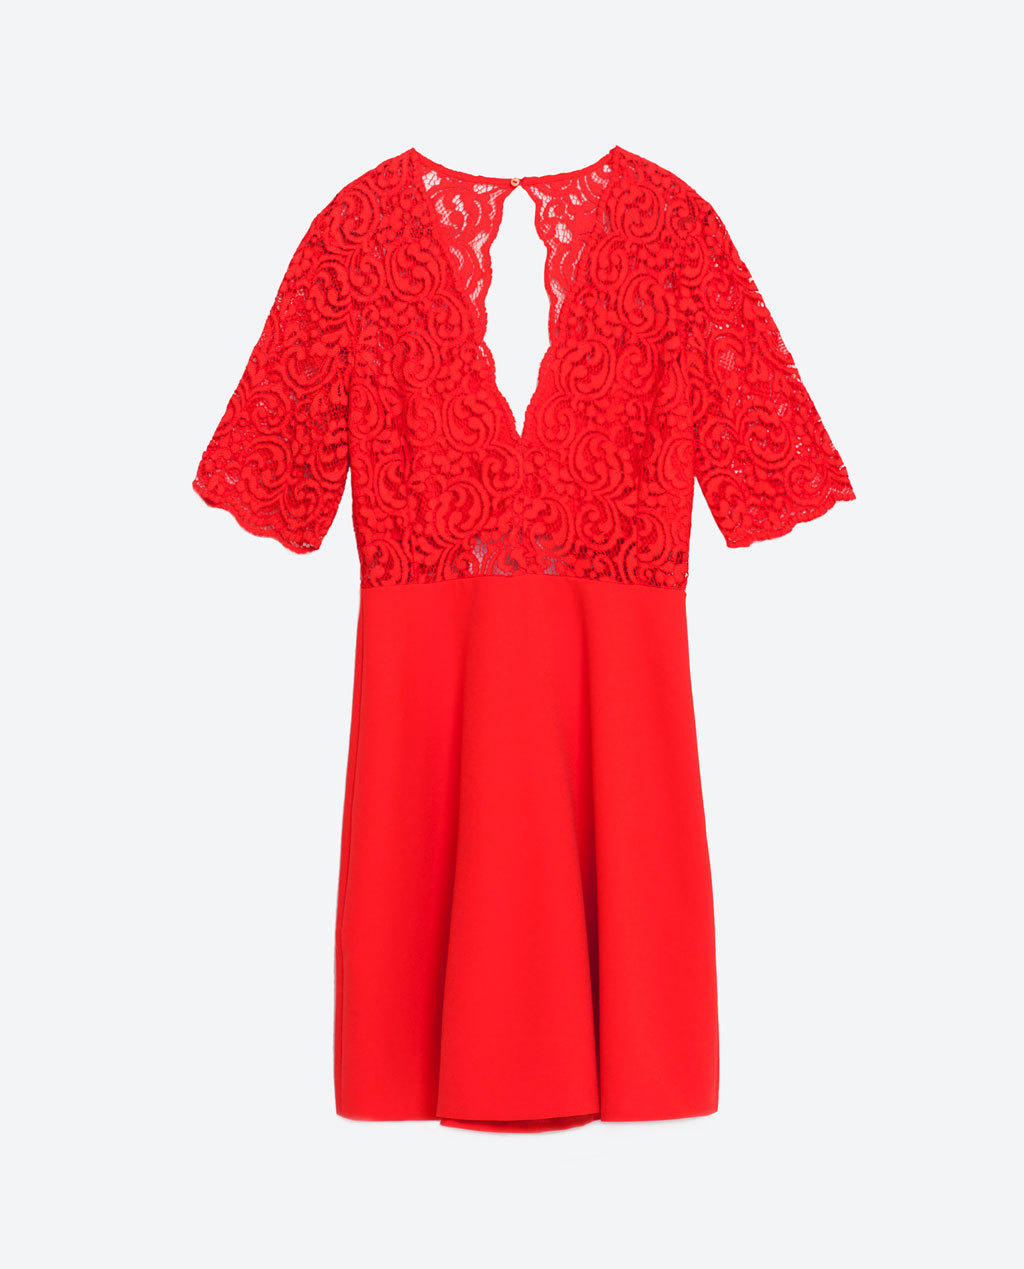 Lace Skater Dress - length: mid thigh; neckline: plunge; back detail: back revealing; predominant colour: true red; occasions: evening; fit: fitted at waist & bust; style: fit & flare; fibres: polyester/polyamide - 100%; sleeve length: 3/4 length; sleeve style: standard; texture group: lace; pattern type: fabric; pattern size: standard; pattern: patterned/print; embellishment: lace; season: s/s 2016; wardrobe: event; embellishment location: top